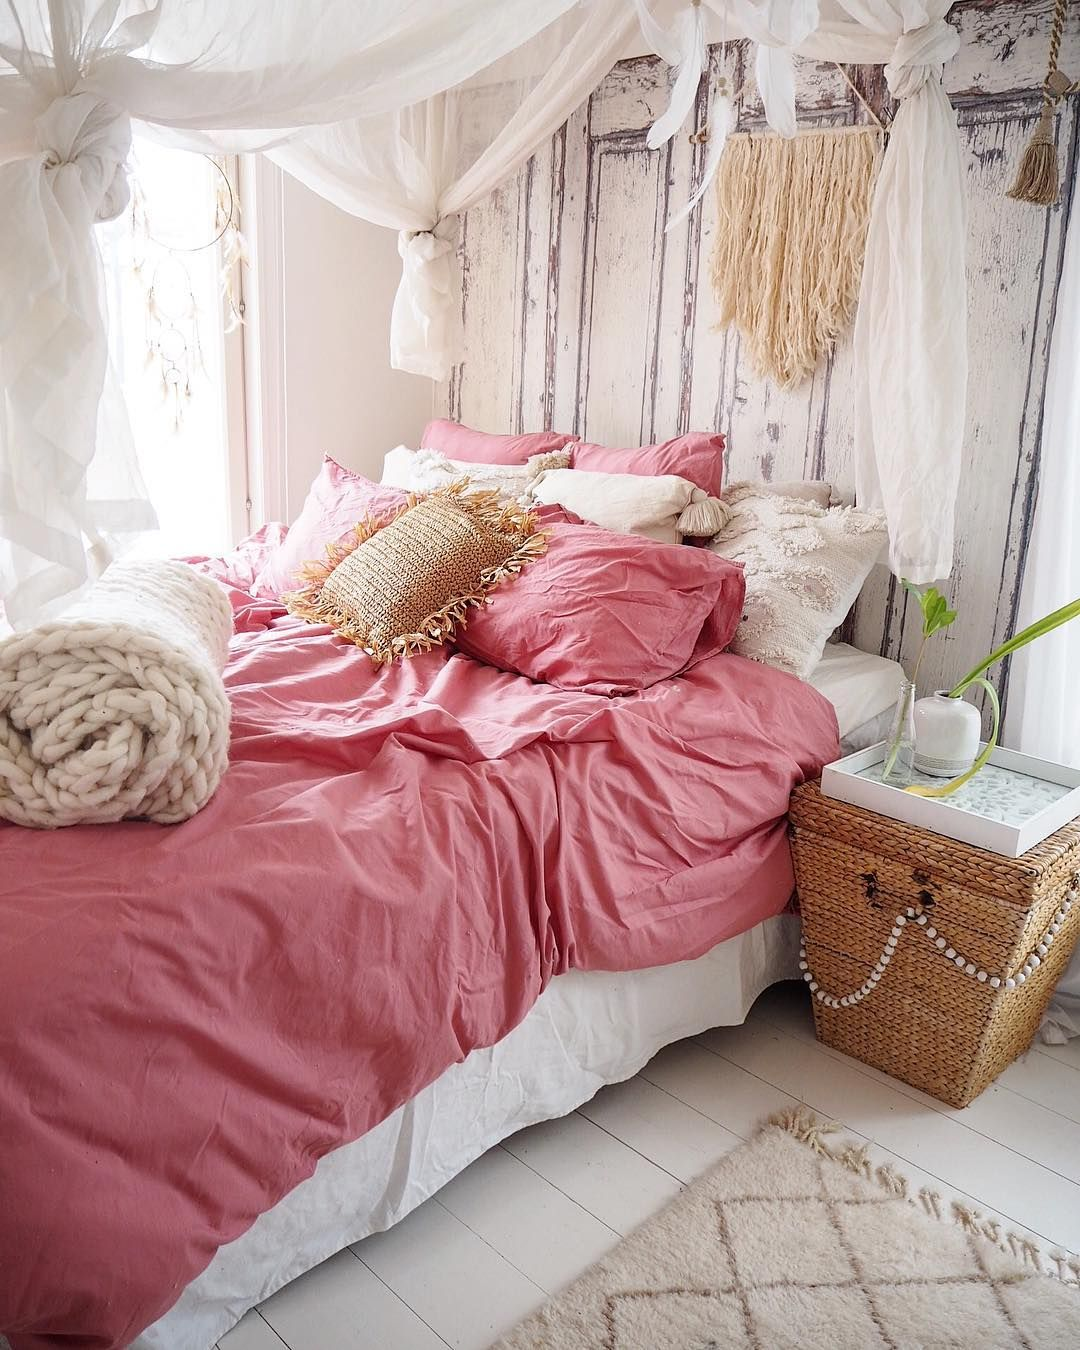 Bohemian bedroom with pink sheets via @prinsessavanessa